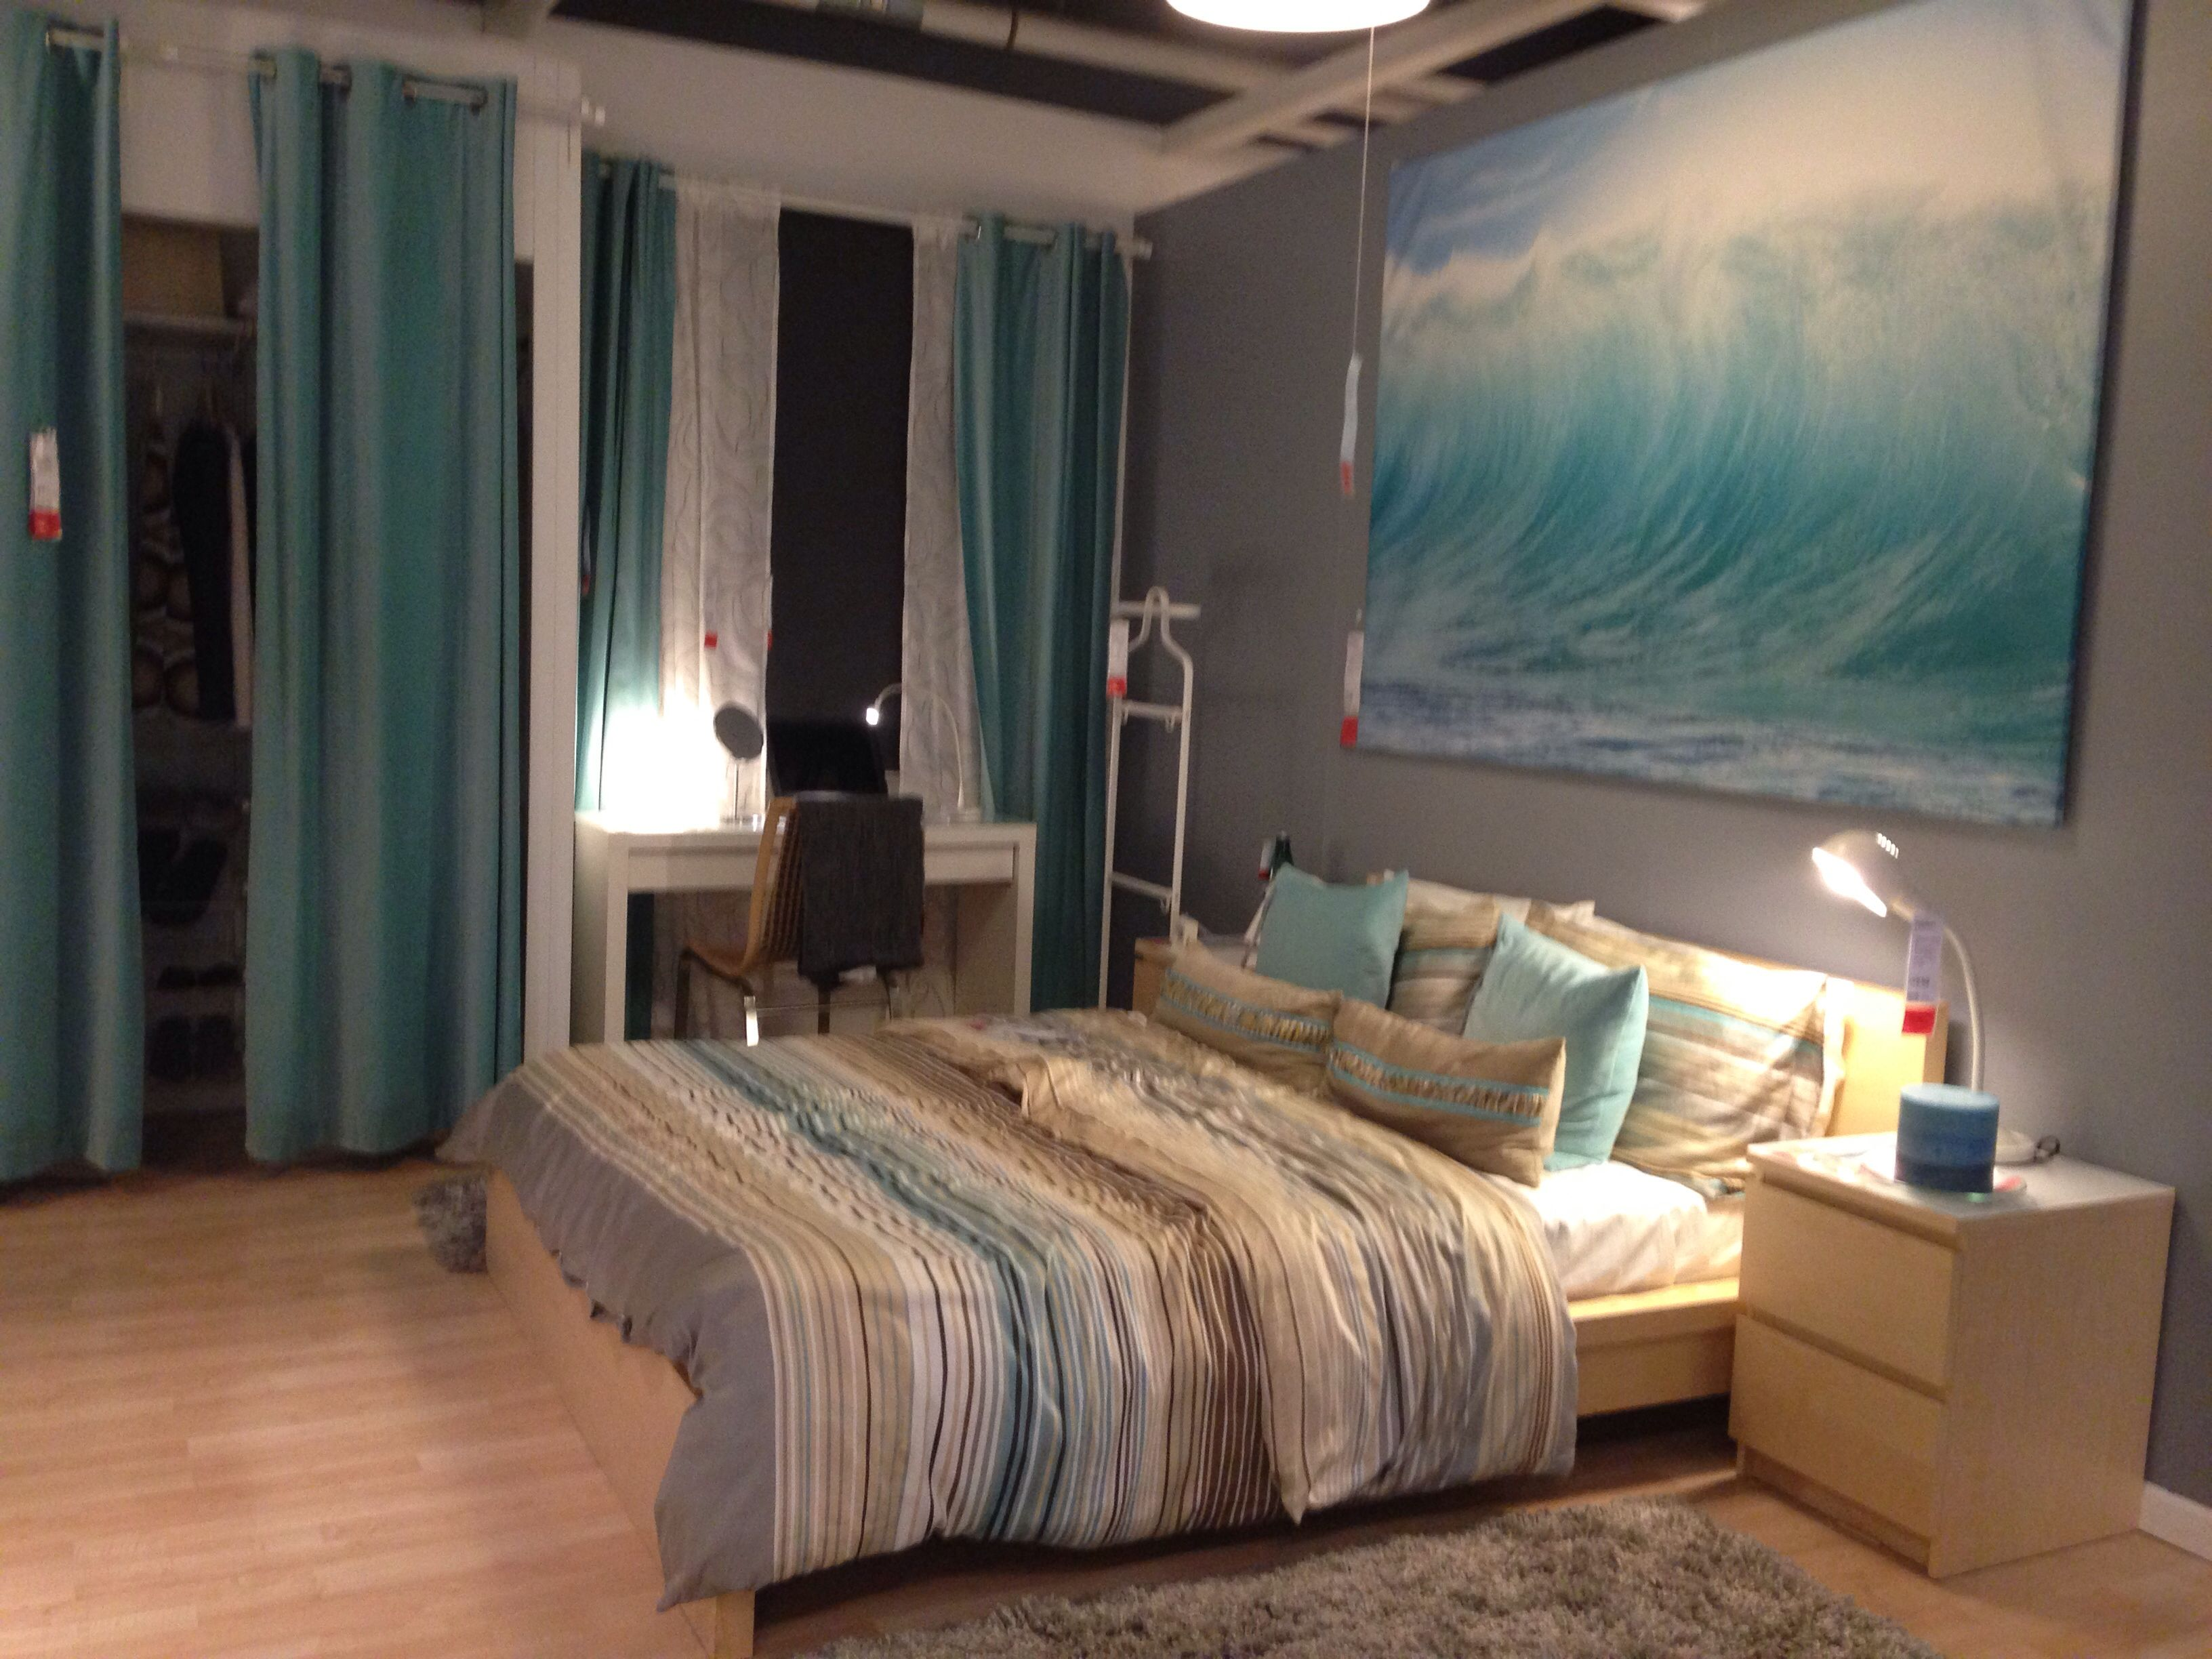 beach themed bedroom everything is sold at ikea love it - Beach Theme Decor